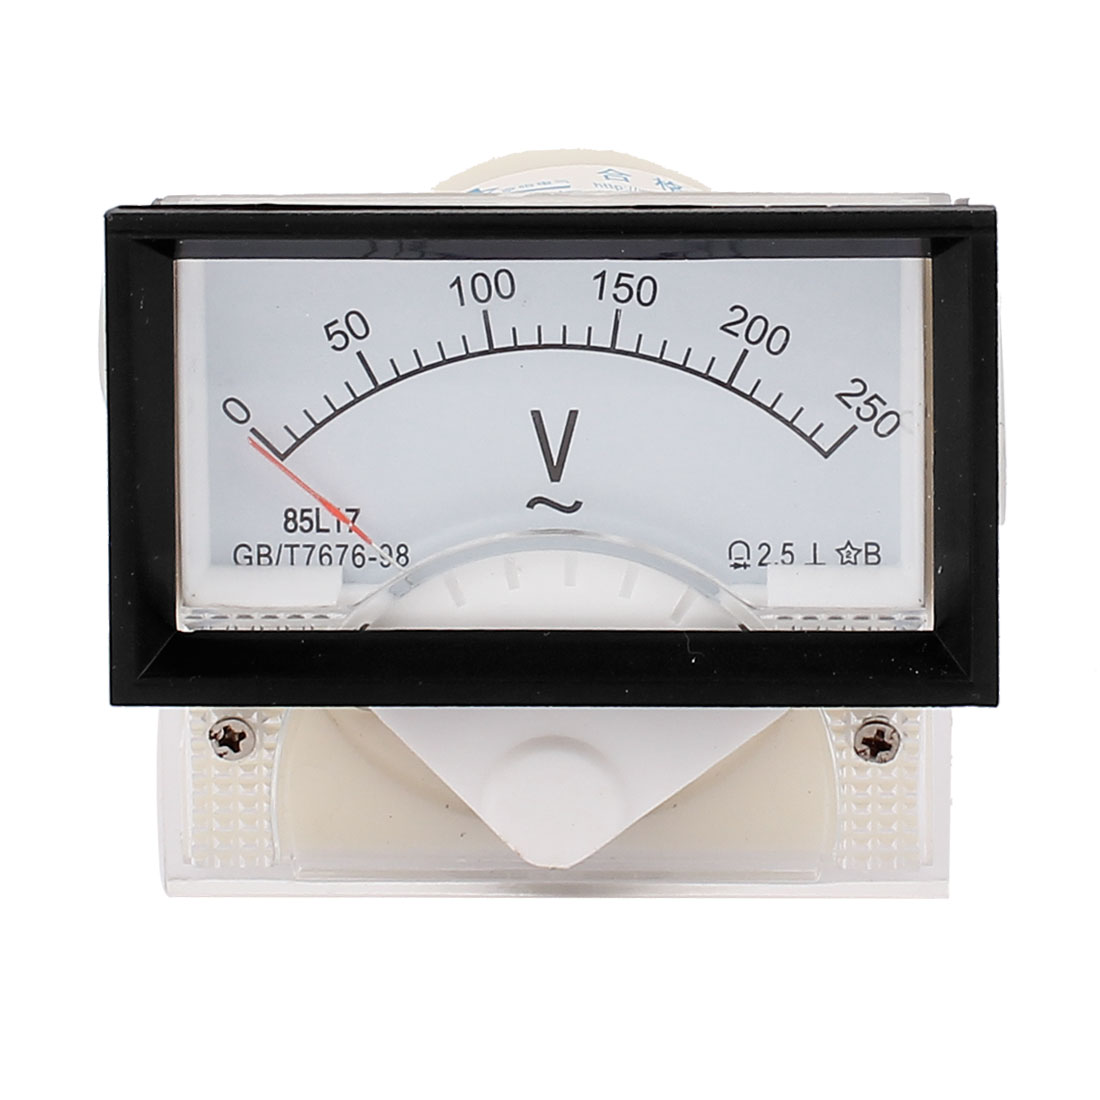 AC 0-250V Class 2.5 Analog Panel Volt Voltage Meter Voltmeter Gauge